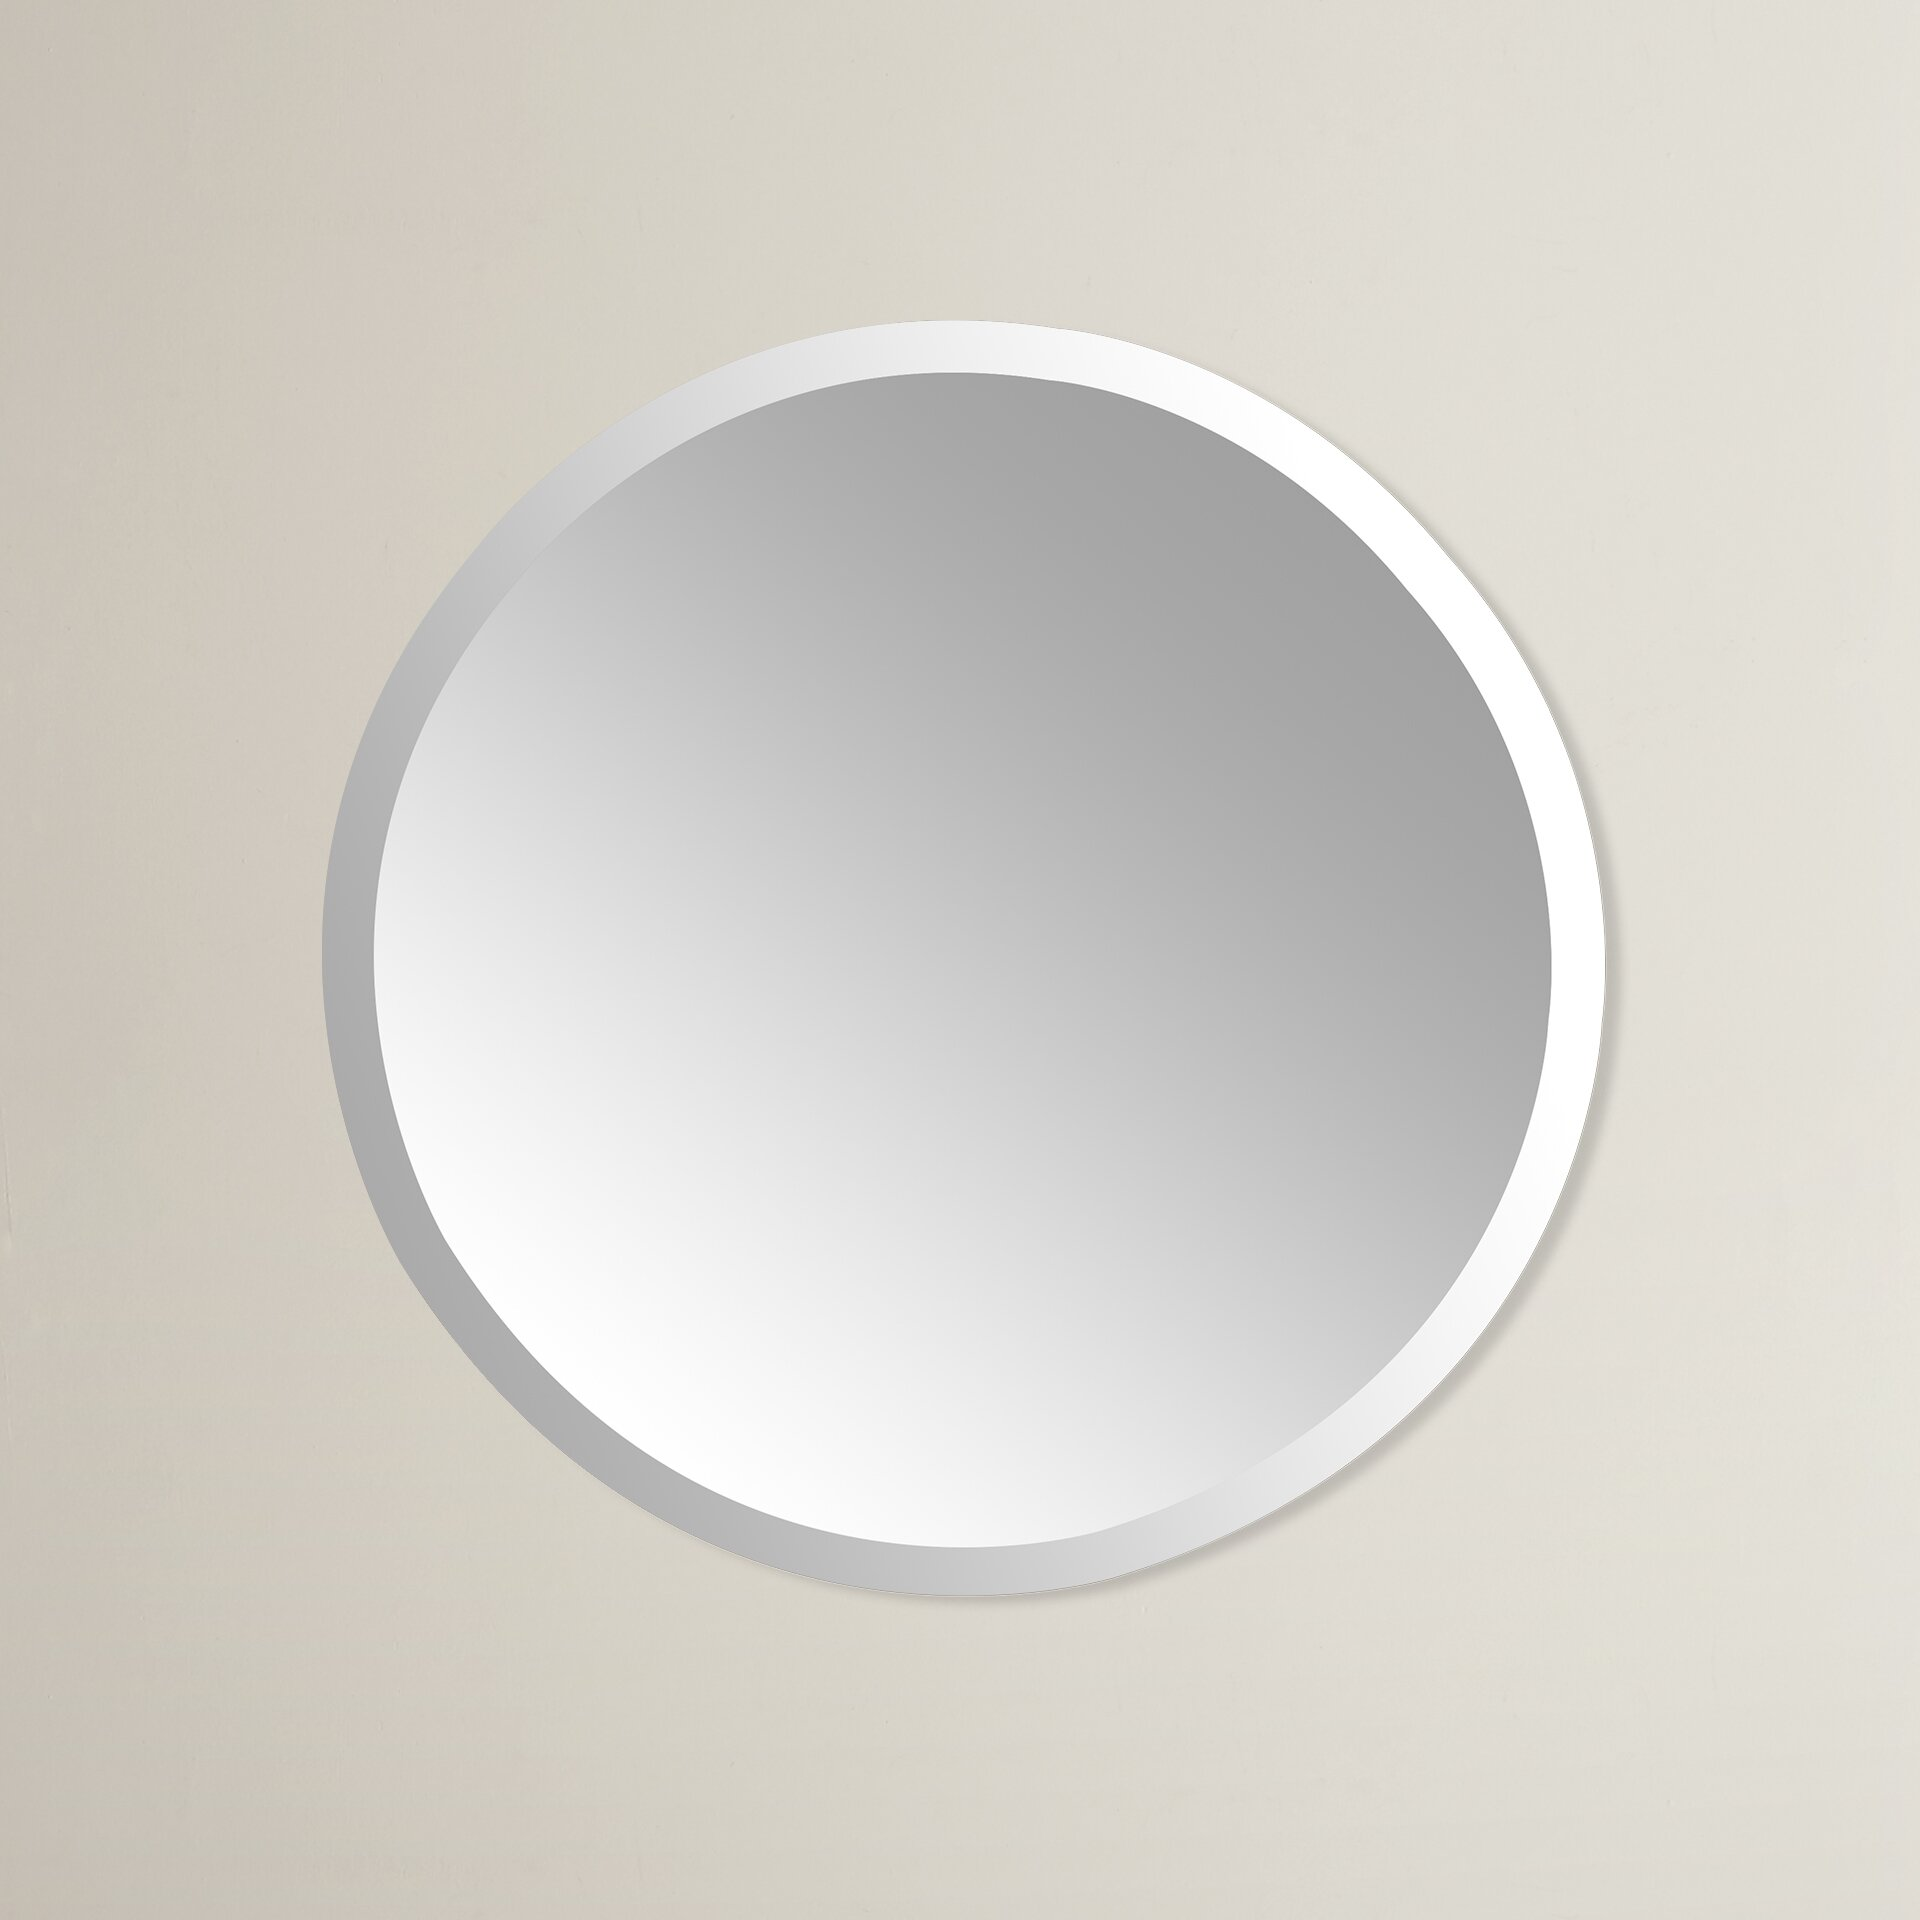 Frameless Bathroom Mirror Wade Logan Kayden Frameless Wall Mirror Reviews Wayfair